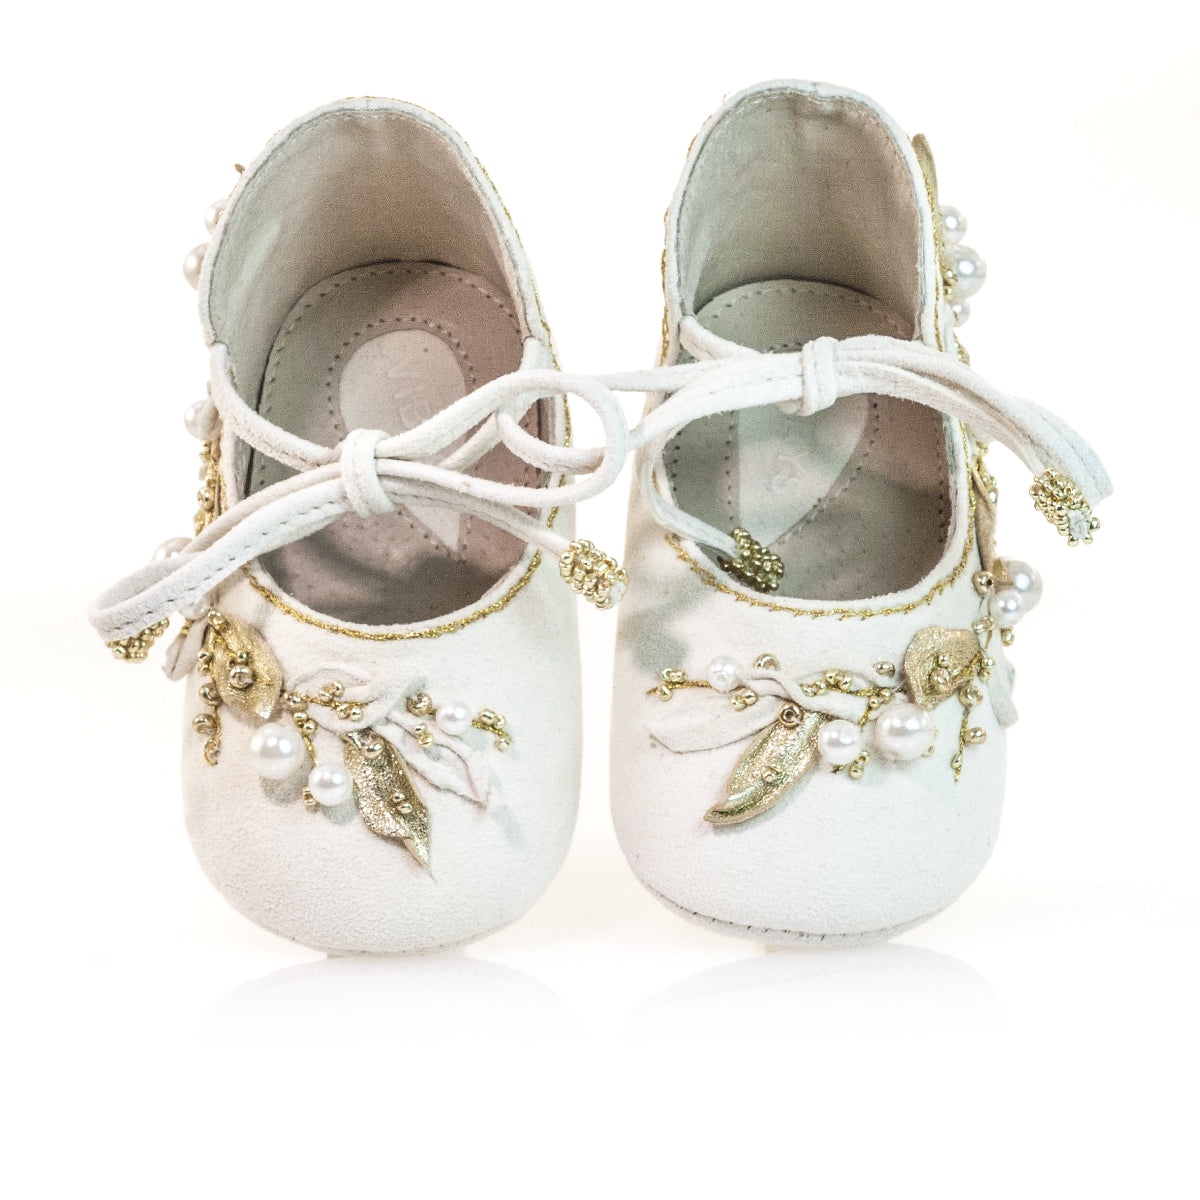 Vibys-Baby-Shoes-Sun-Glow-top-view